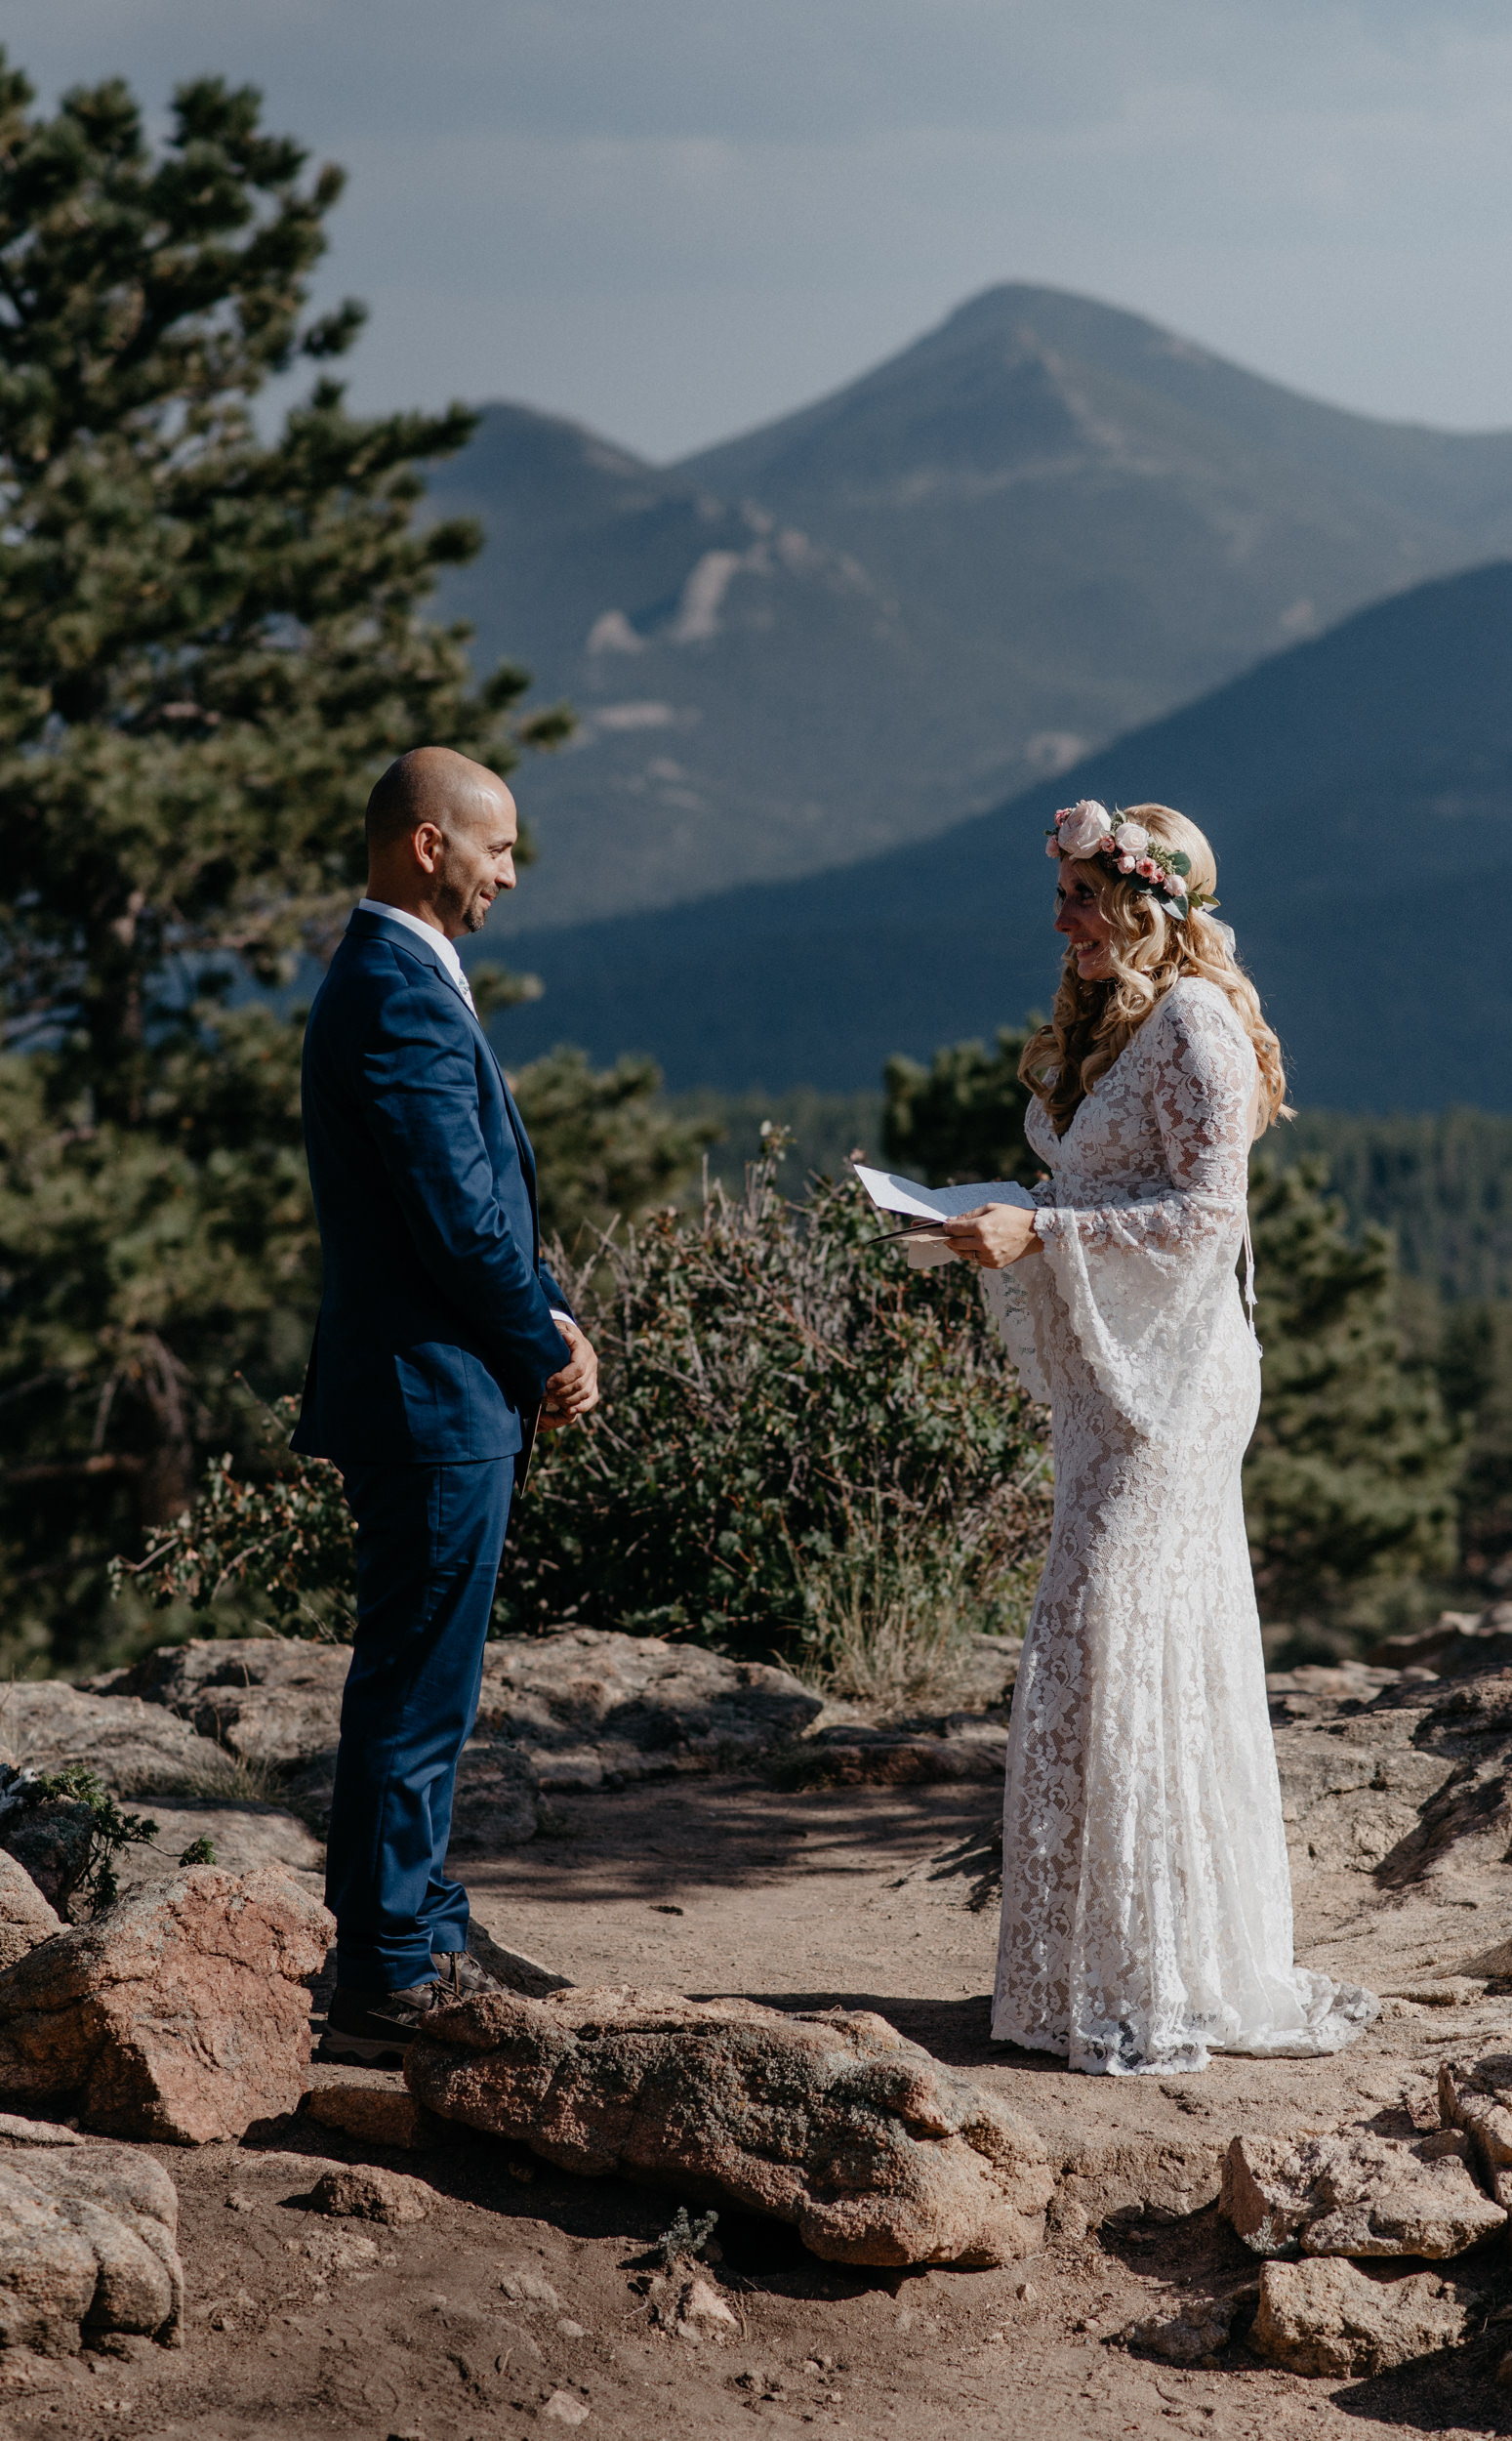 Colorado elopement and wedding photographer for laid back couples. Adventure elopement in Rocky Mountain National Park at 3M curve.